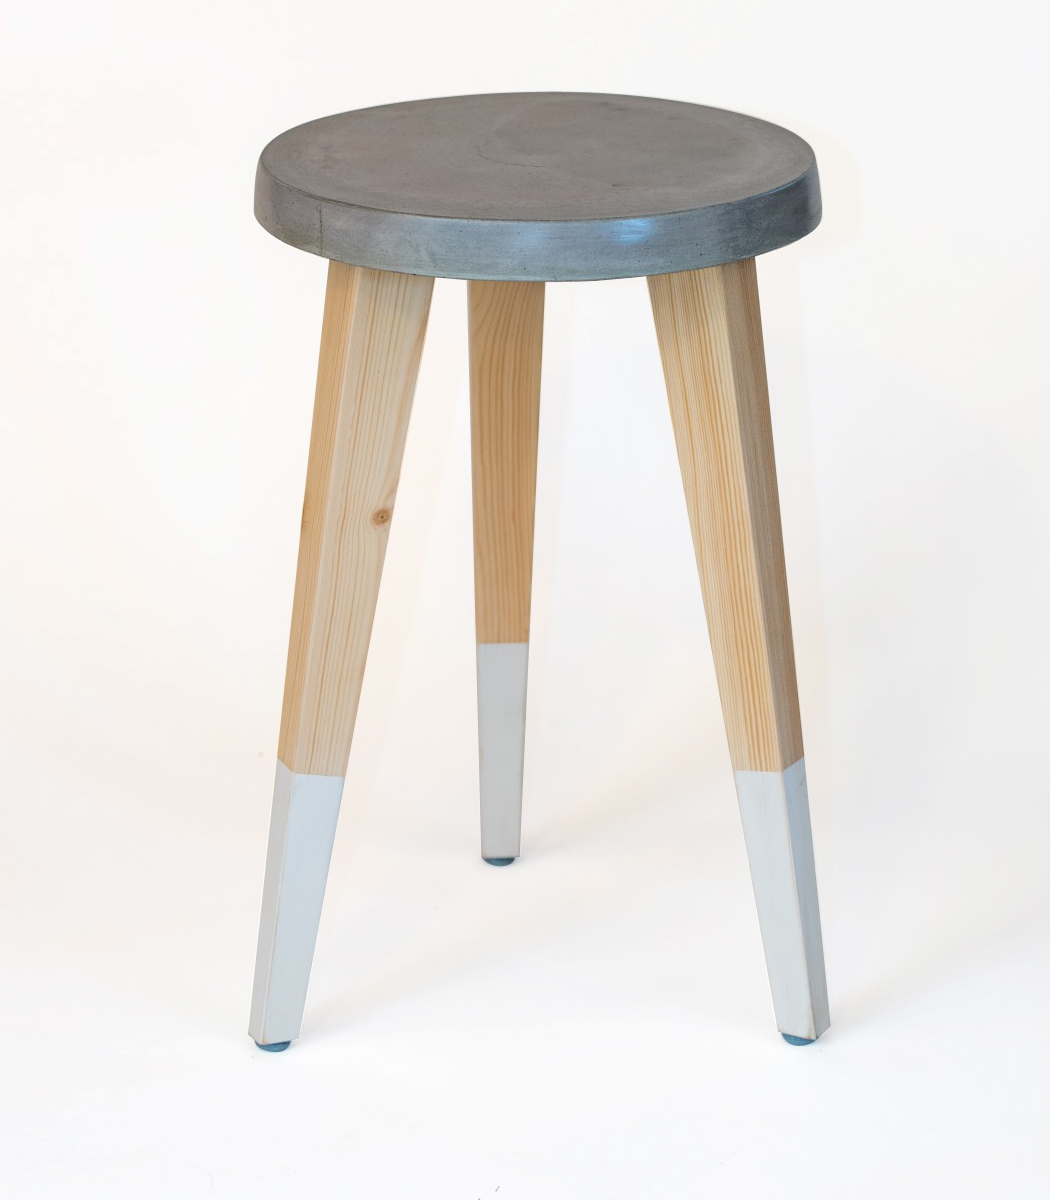 Concrete stool 28 with vinyl white socks